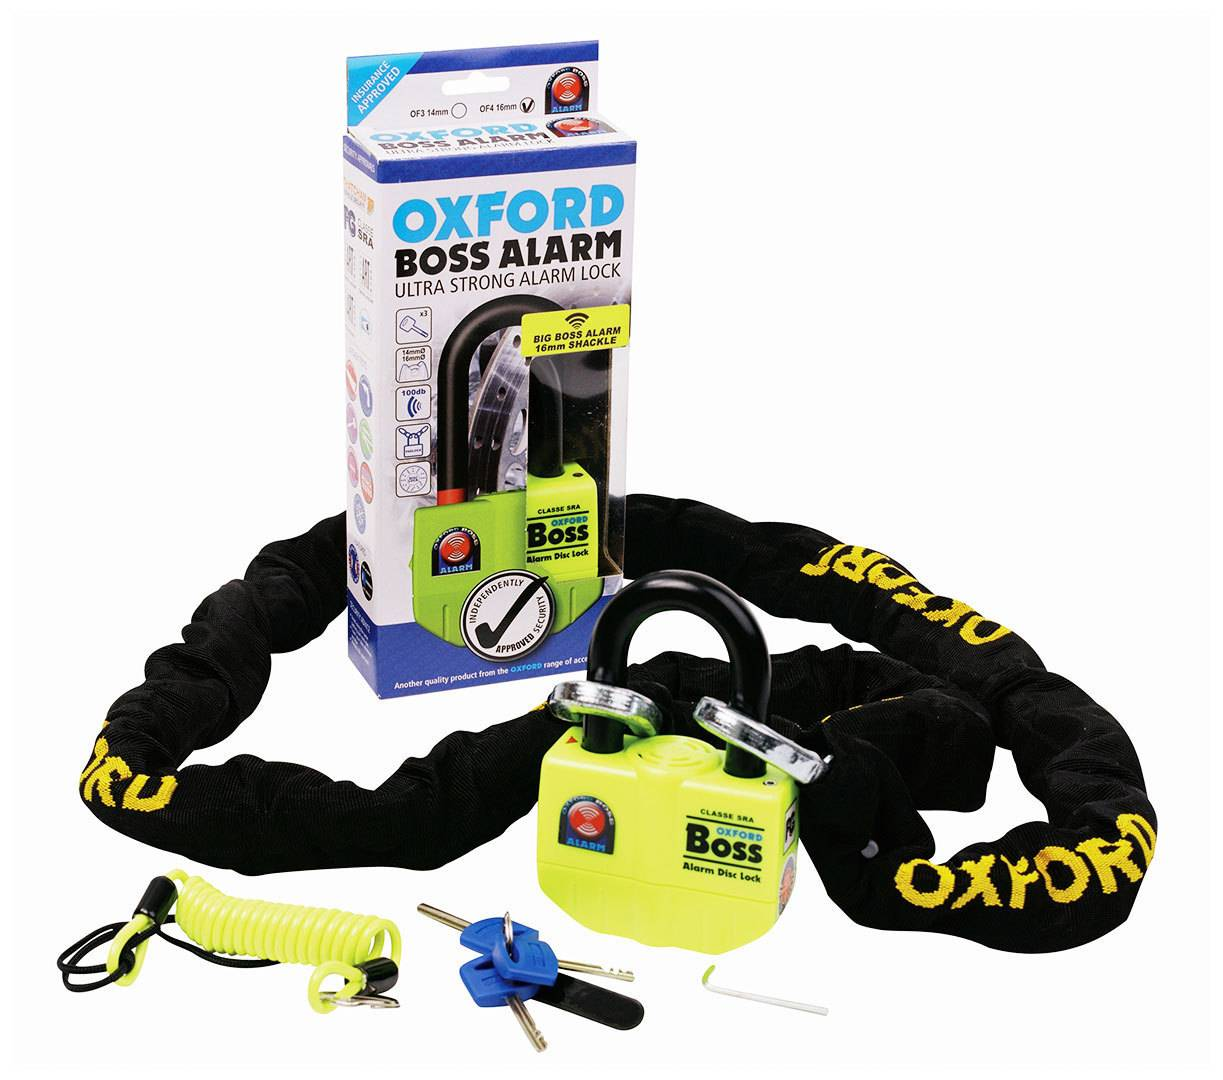 Oxford Boss Chain and Alarm Padlock Negro 120 cm